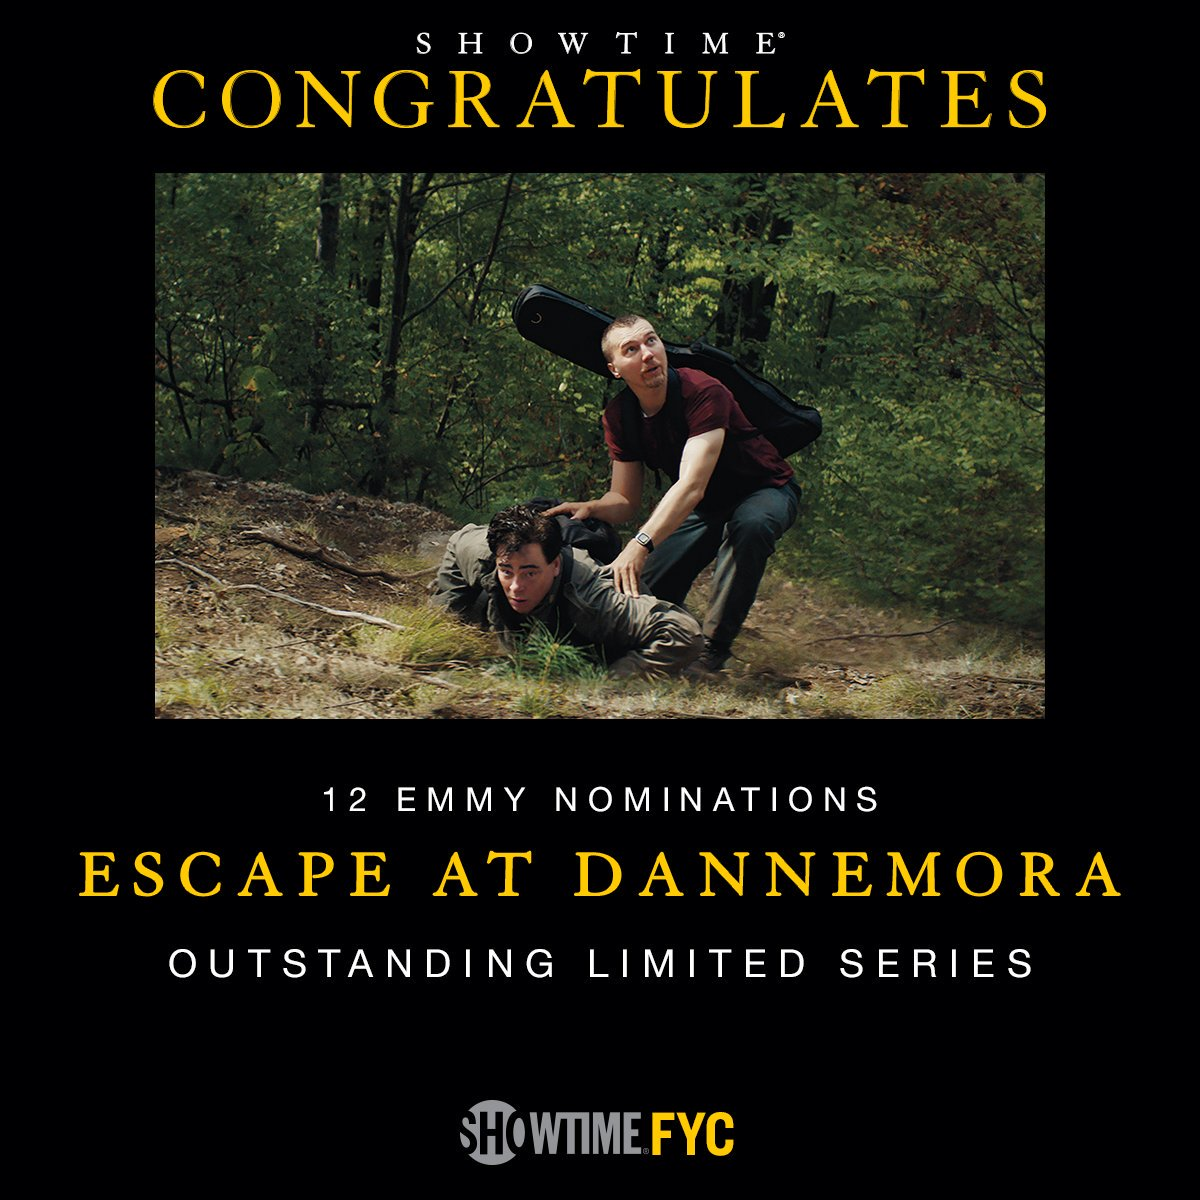 Showtime: To celebrate our 18 #Emmy nominations, you can now stream the first episodes of #Escape...